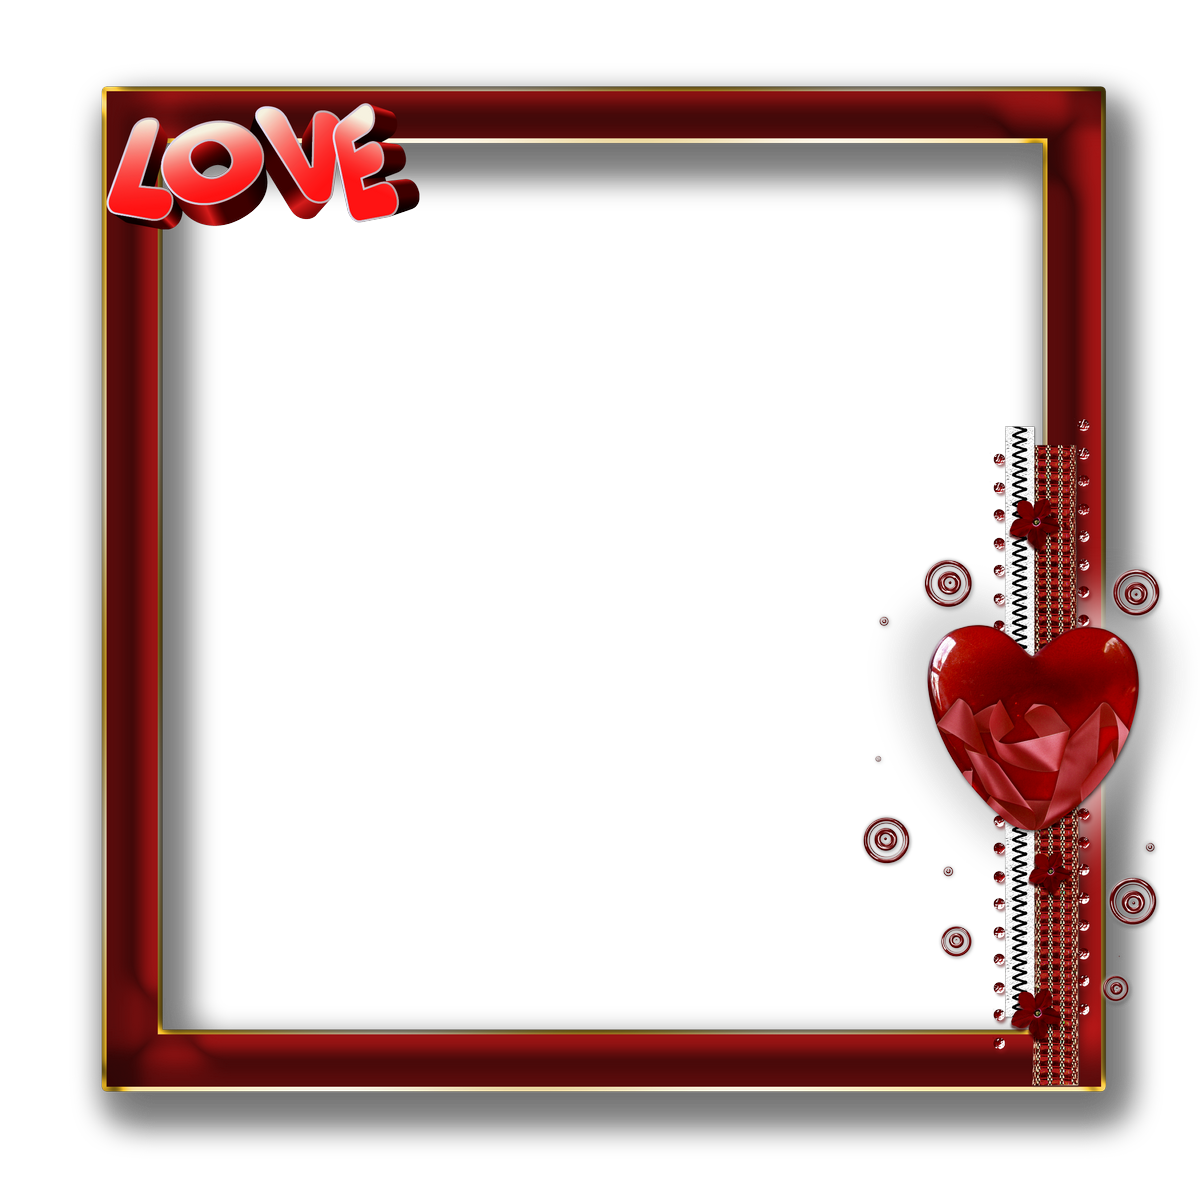 Love Frame Frames Love Picture Frames Hd Background